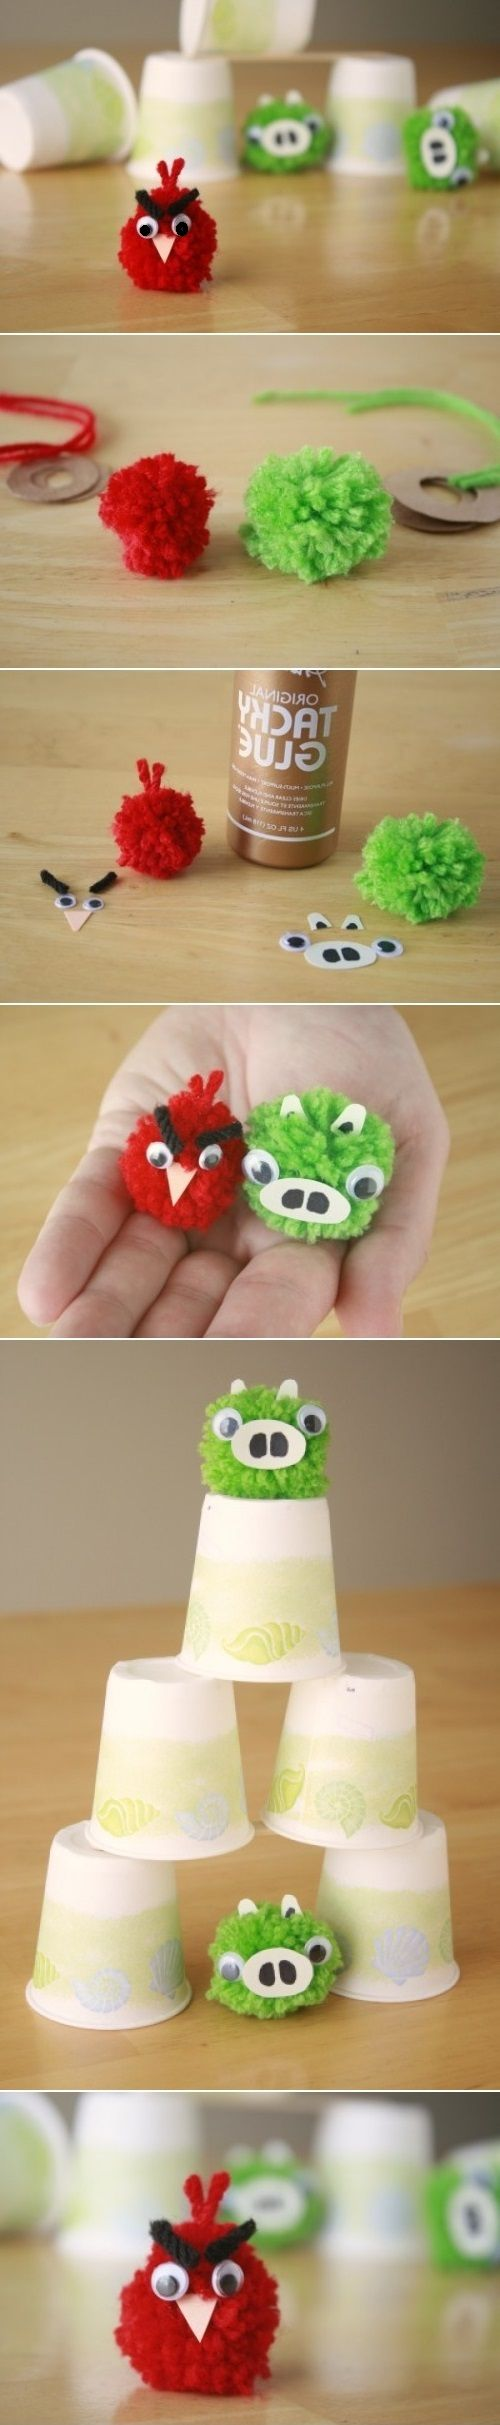 DIY Angry Birds Yarn Pom-Poms... think I can come up with a game for the kids with this